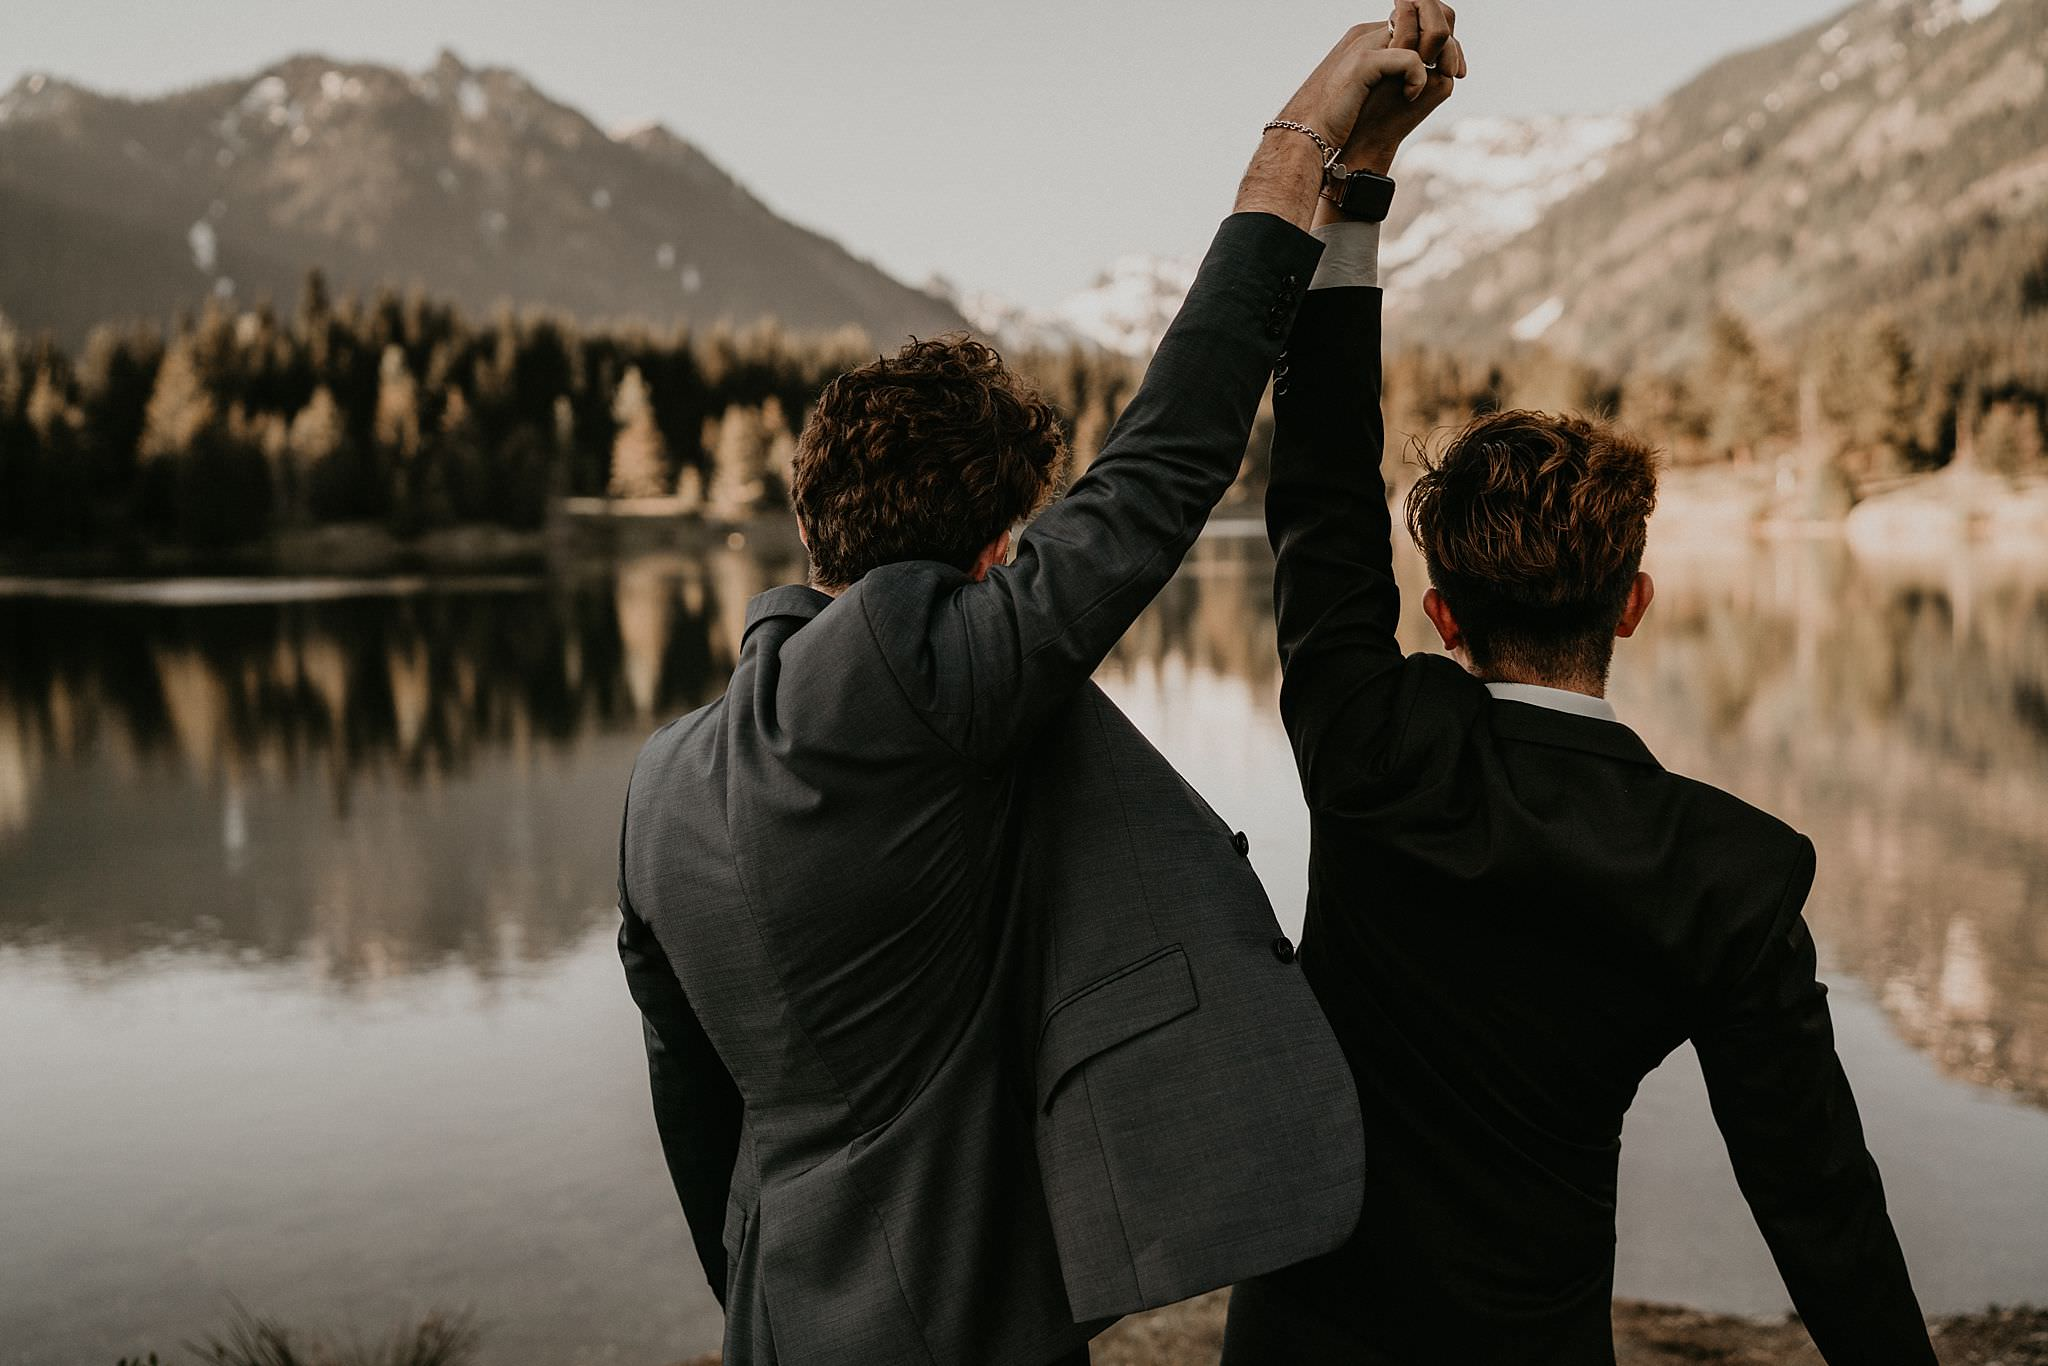 Gold-Creek-Pond-Elopement-Pacific-Northwest-Washington-Mountain-LGBT-Gay-Wedding_0025.jpg